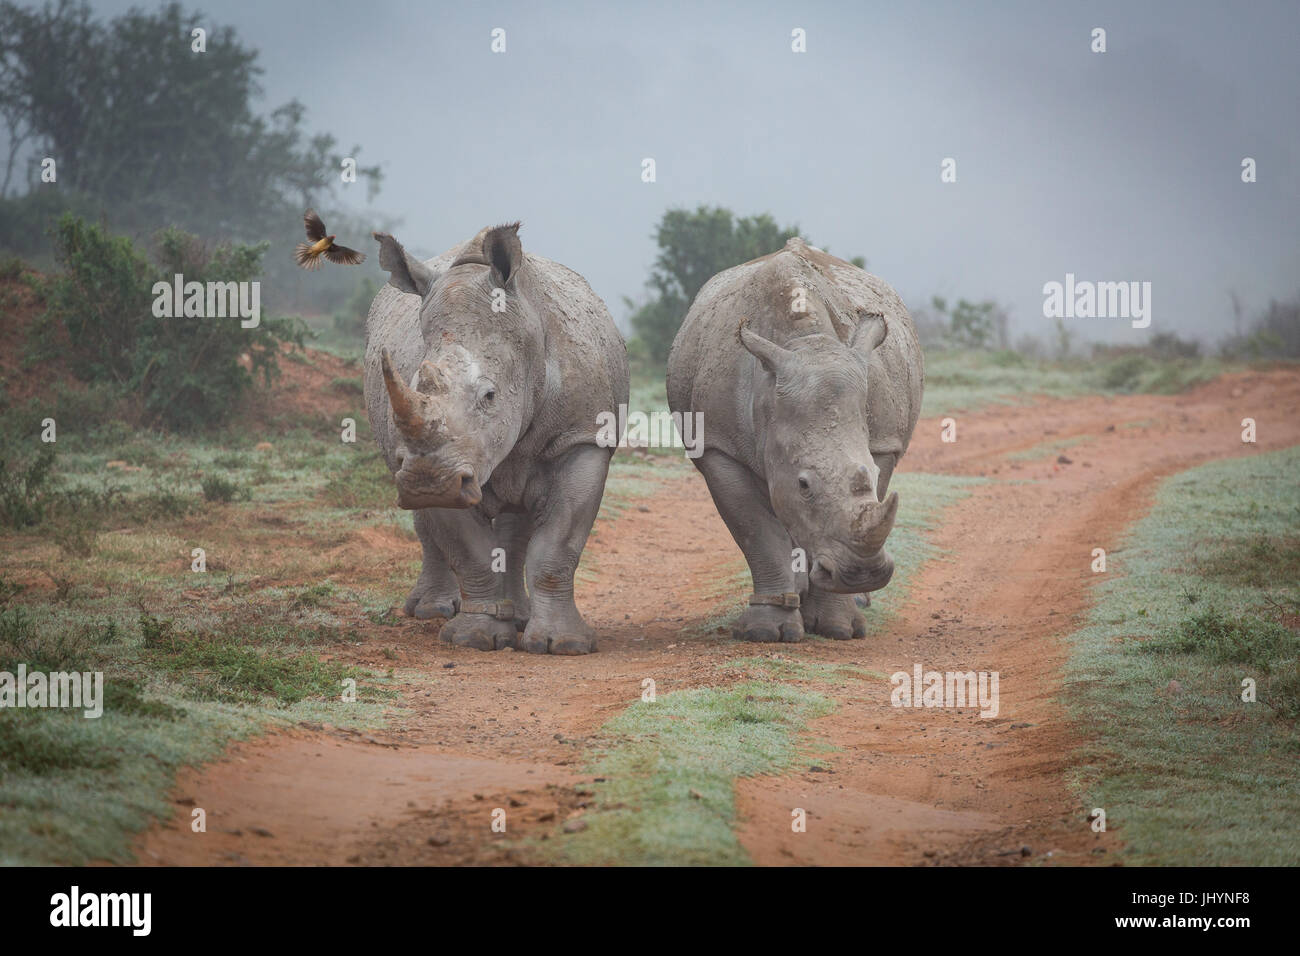 Two Rhinos and an oxpecker bird in the Amakhala Game Reserve in the Eastern Cape, South Africa, Africa - Stock Image